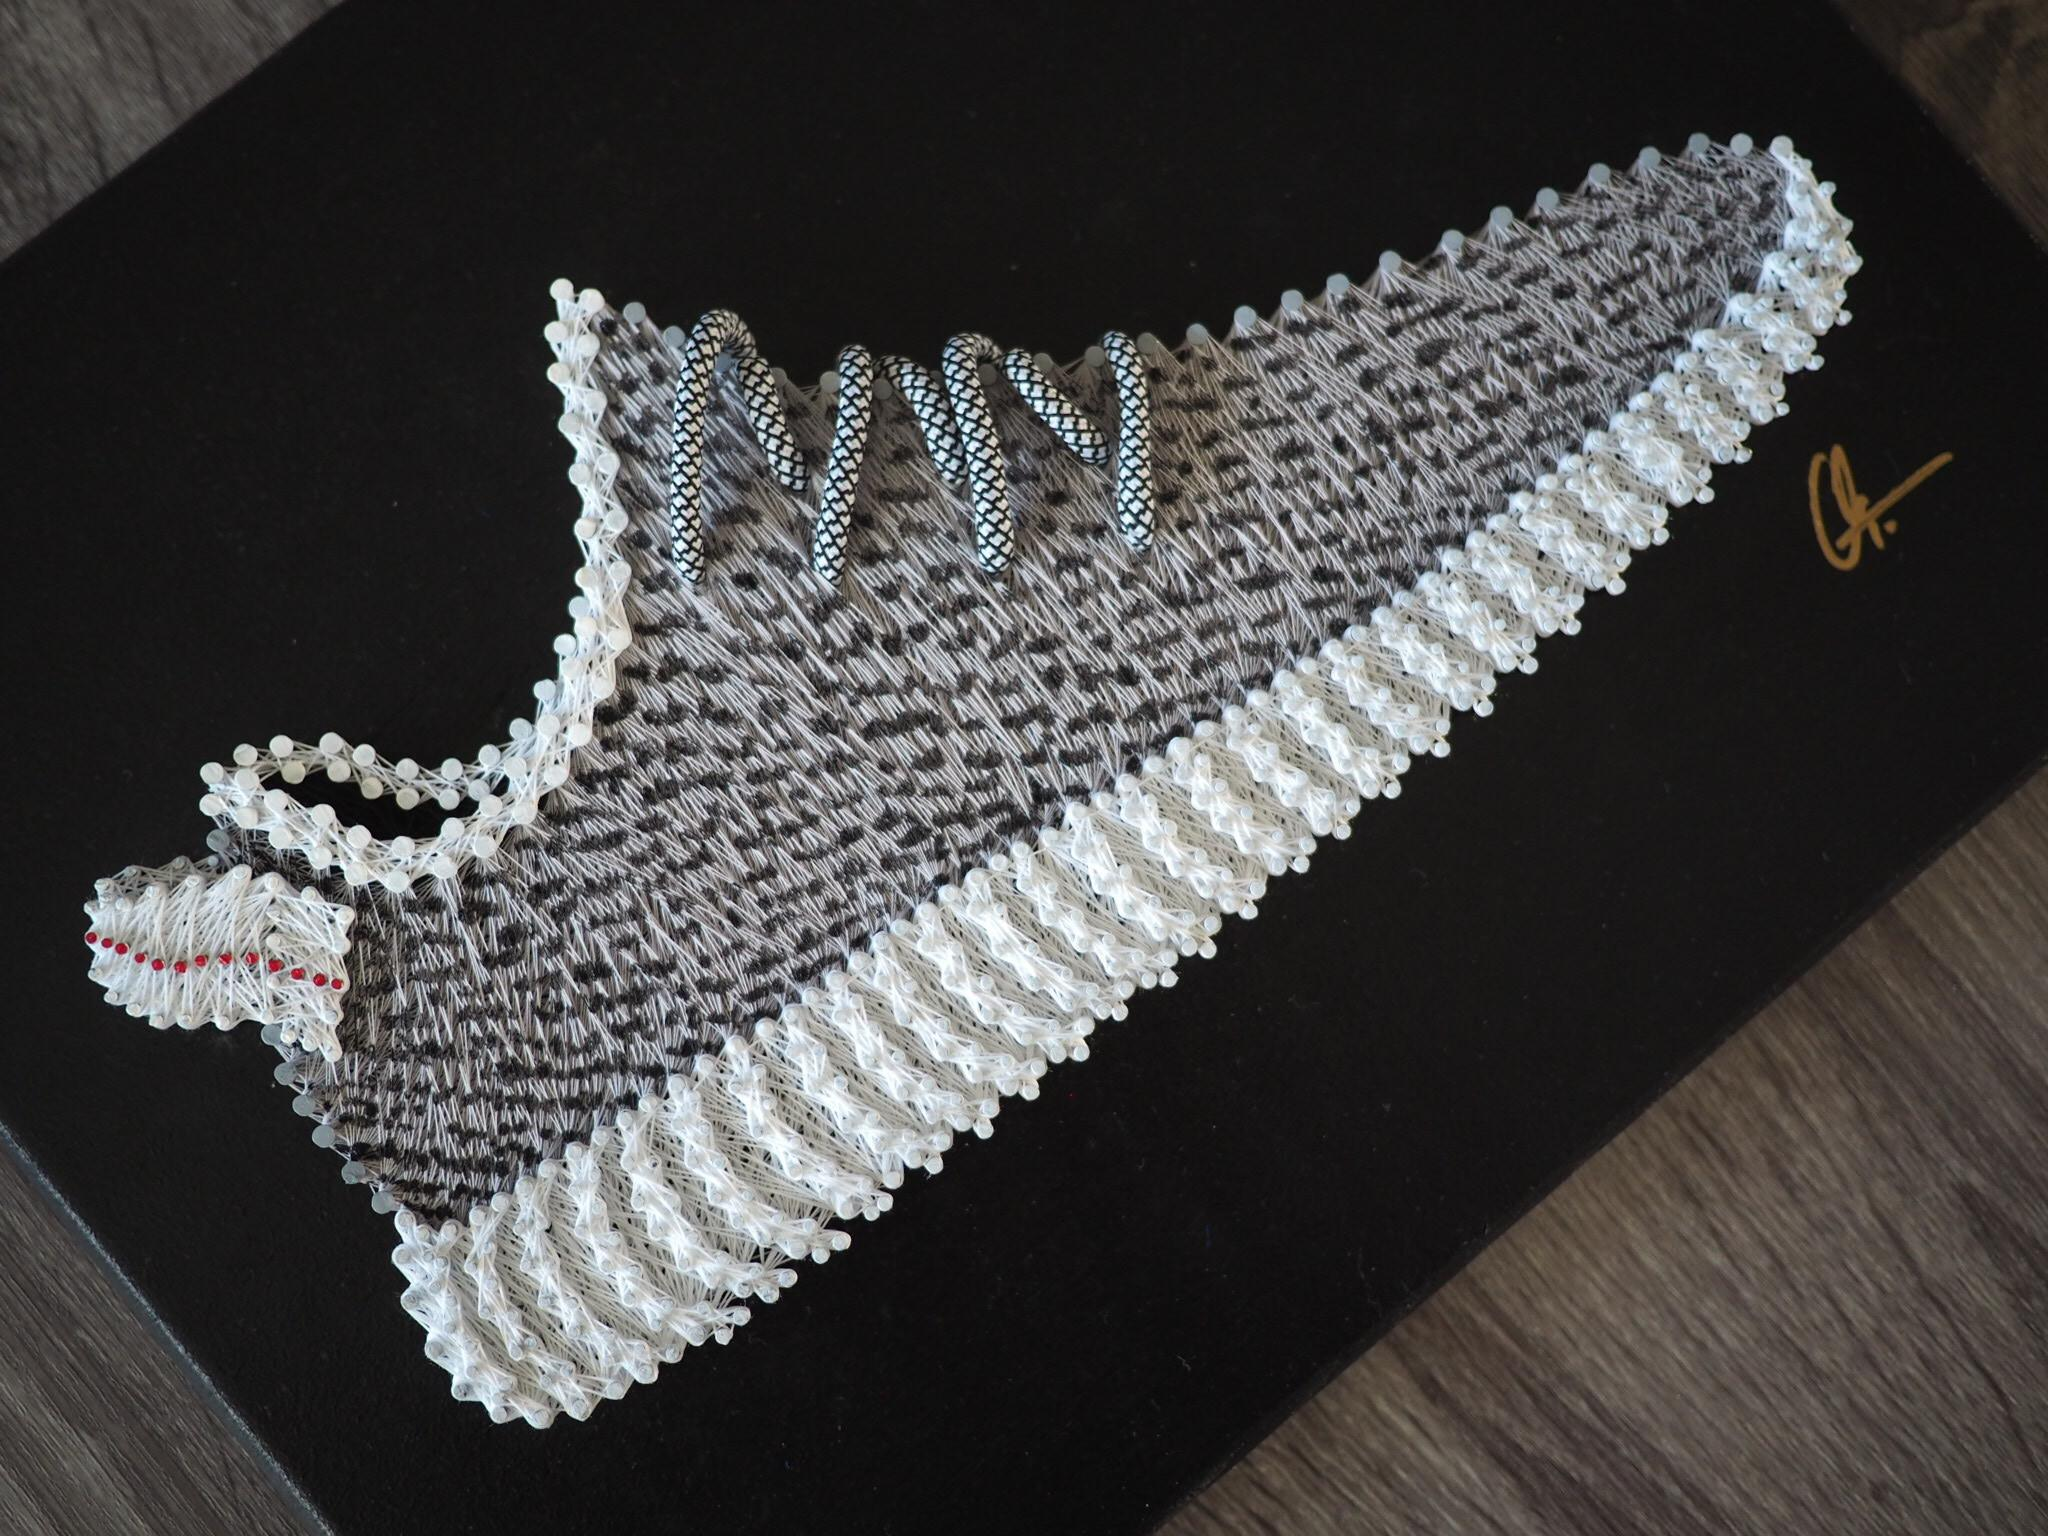 Adidas Yeezy Boost 350 Turtledove String Art Piece